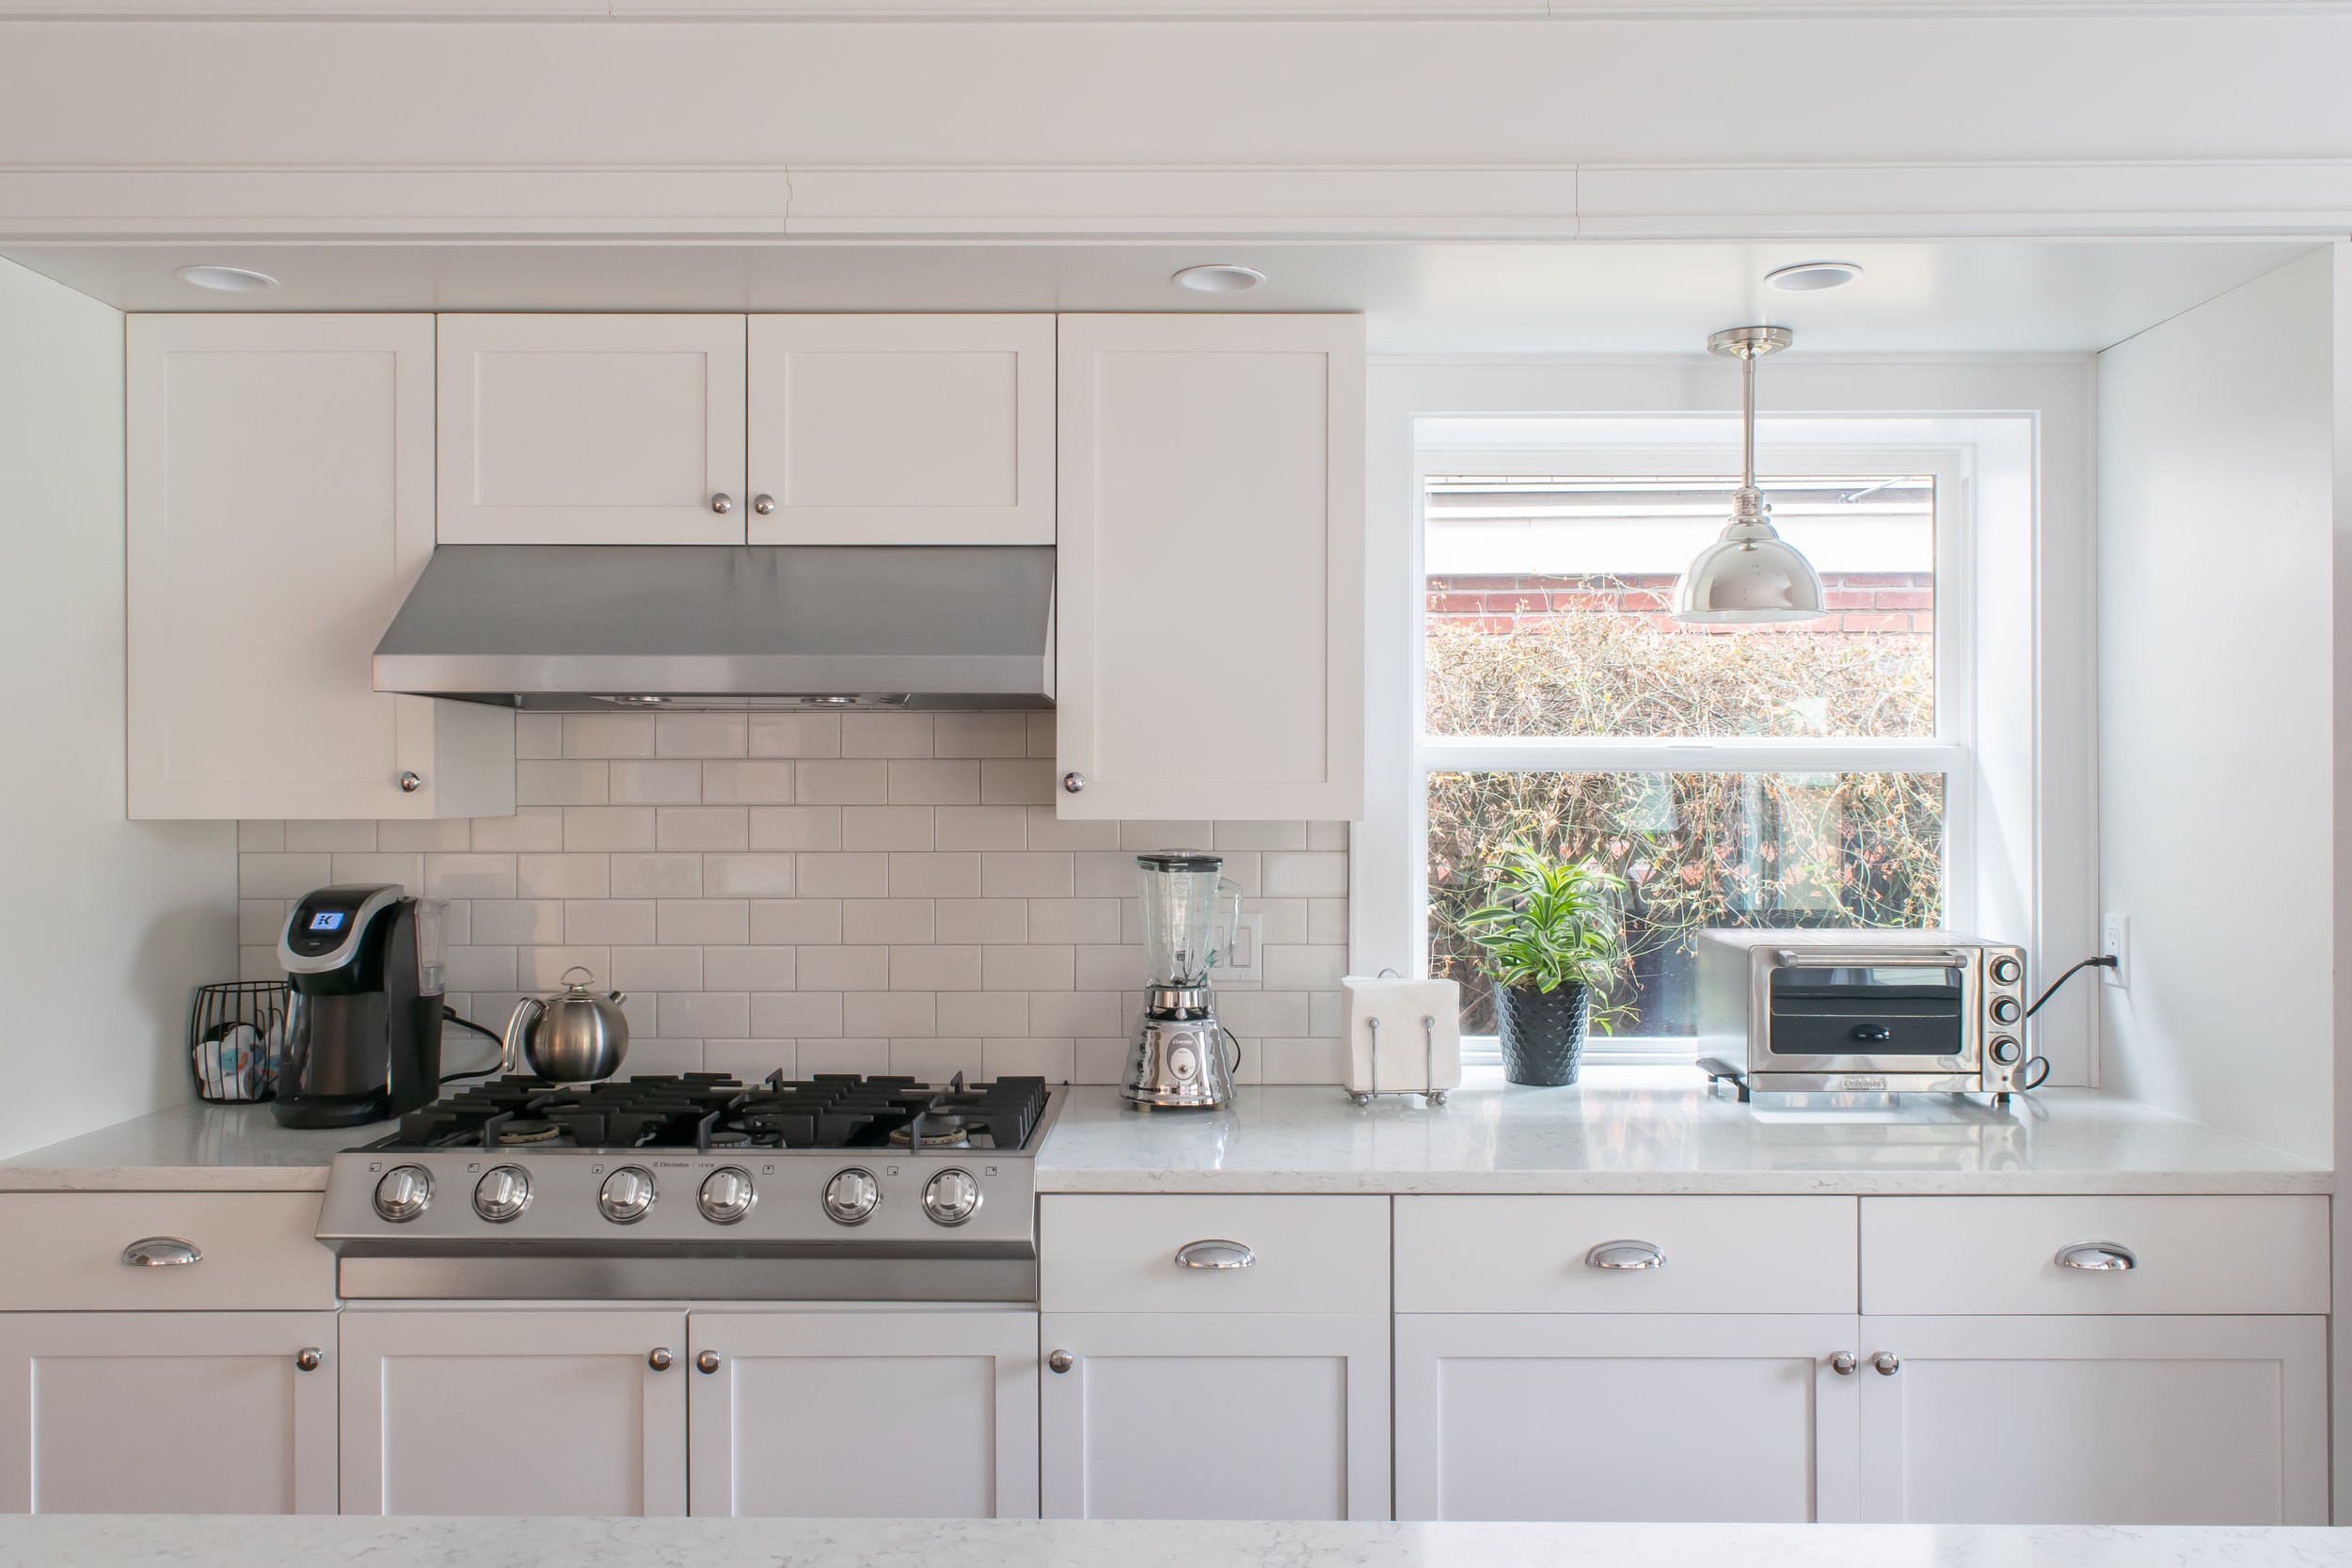 Kitchen counter and cooktop illuminated by natural light